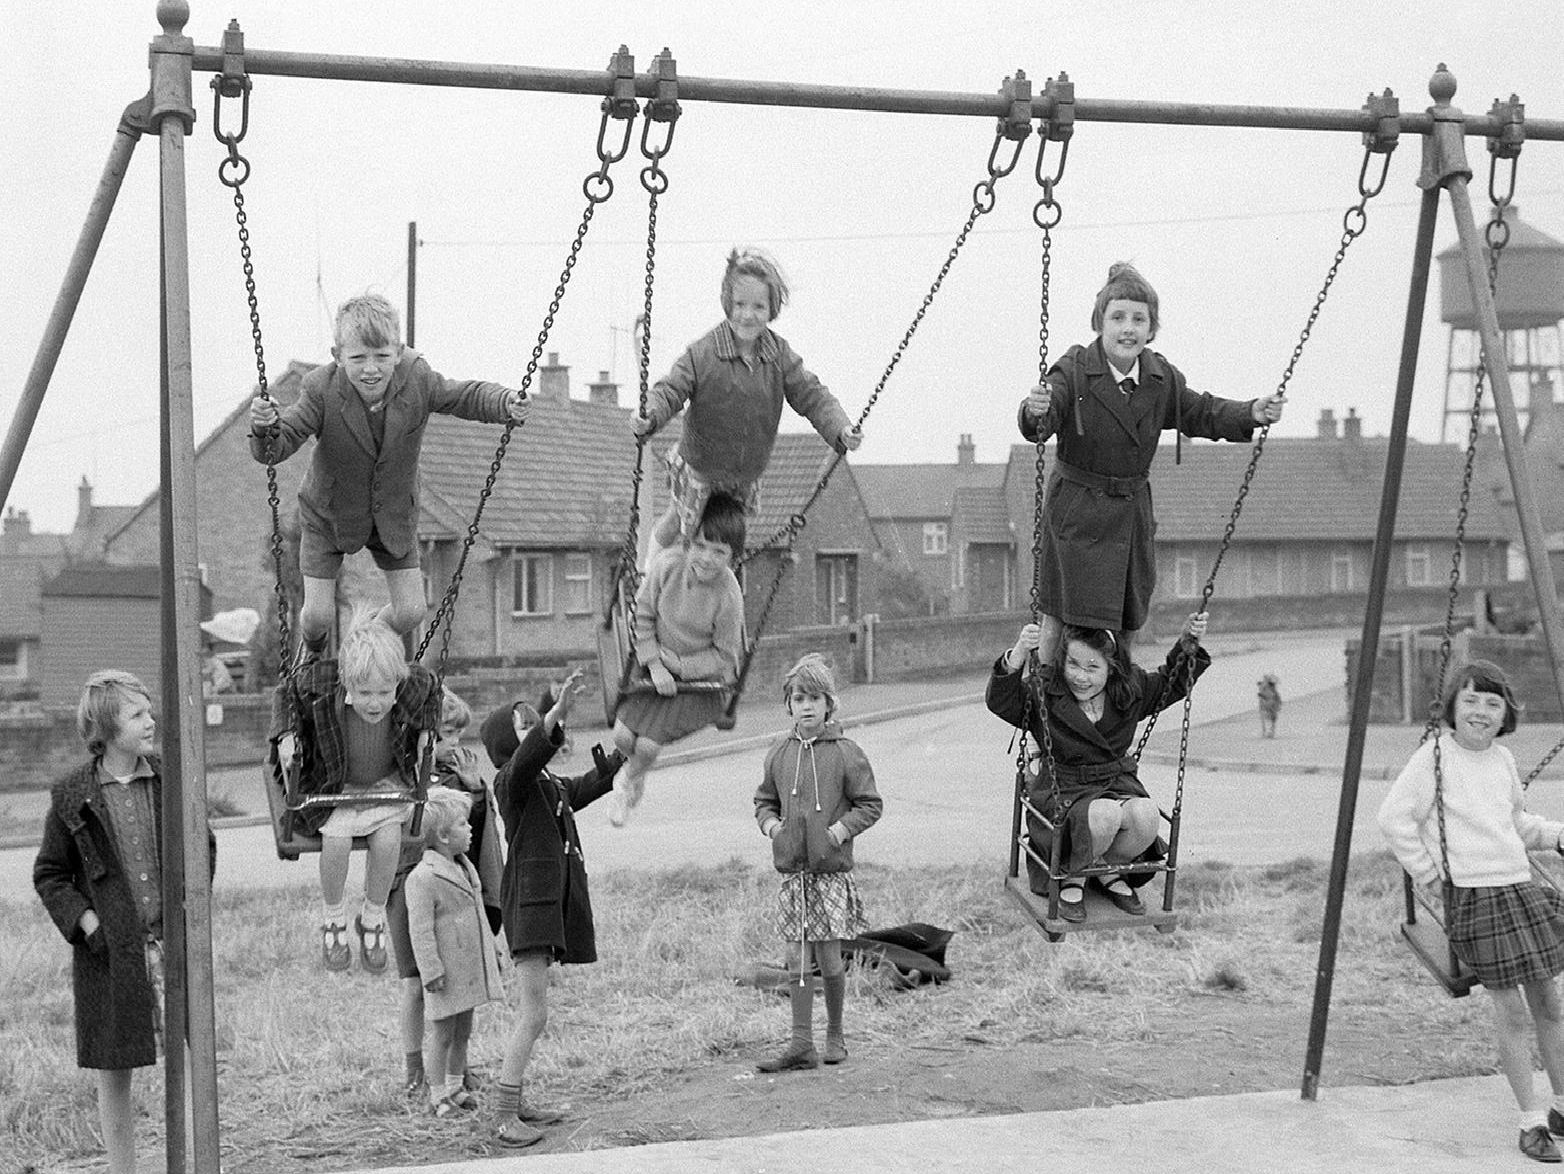 Enjoying having ago on the swings.